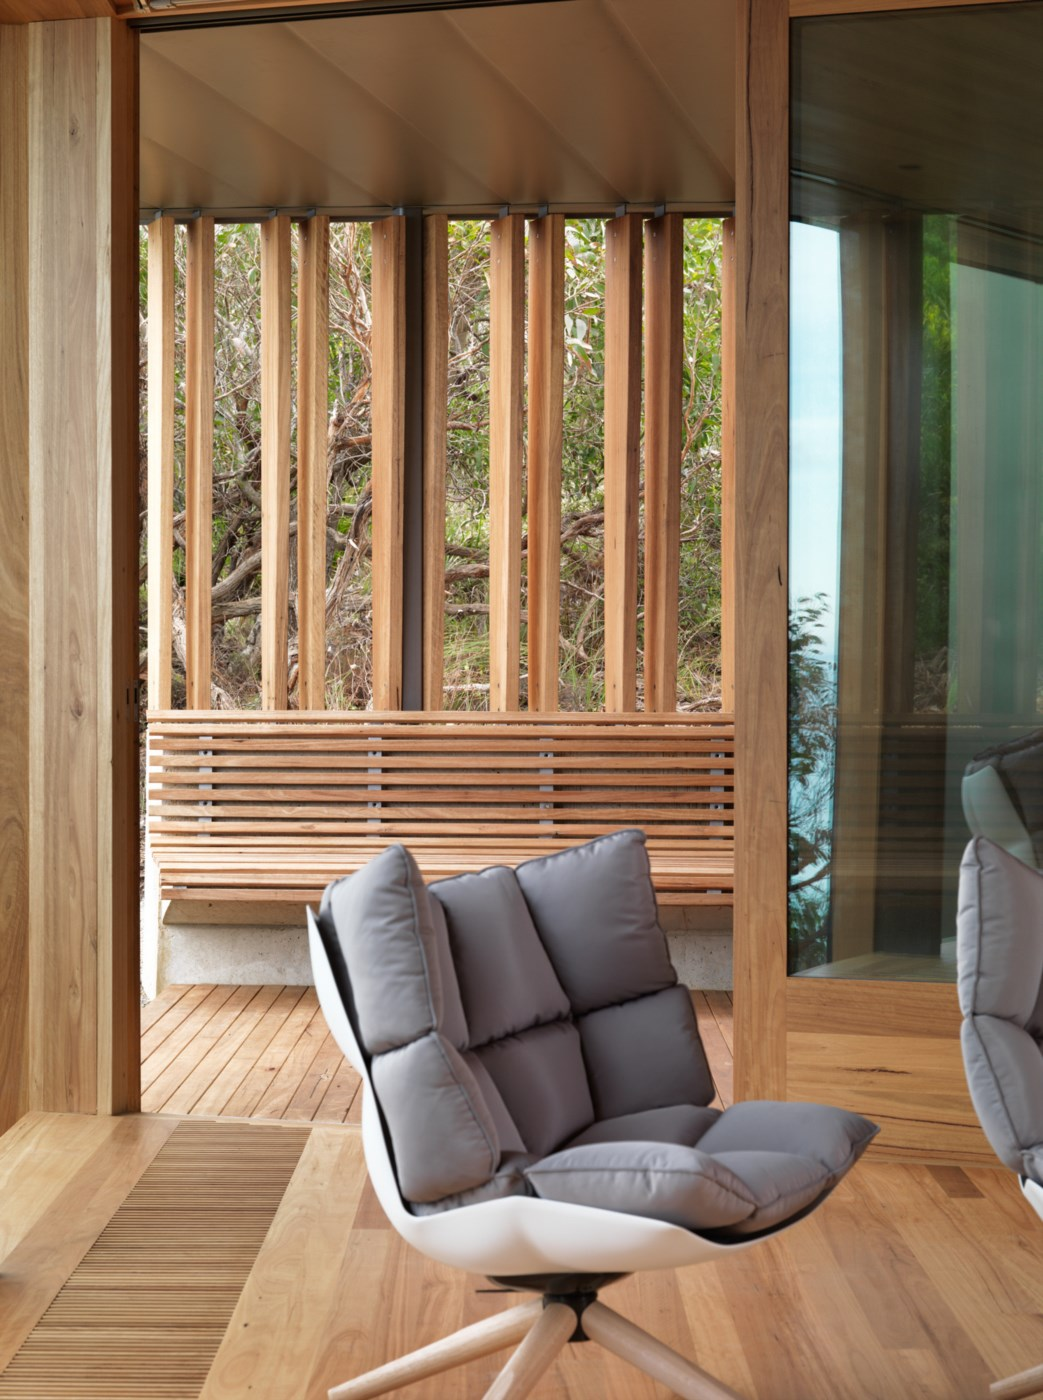 wooden timber interior, modern living room, open walls and great view